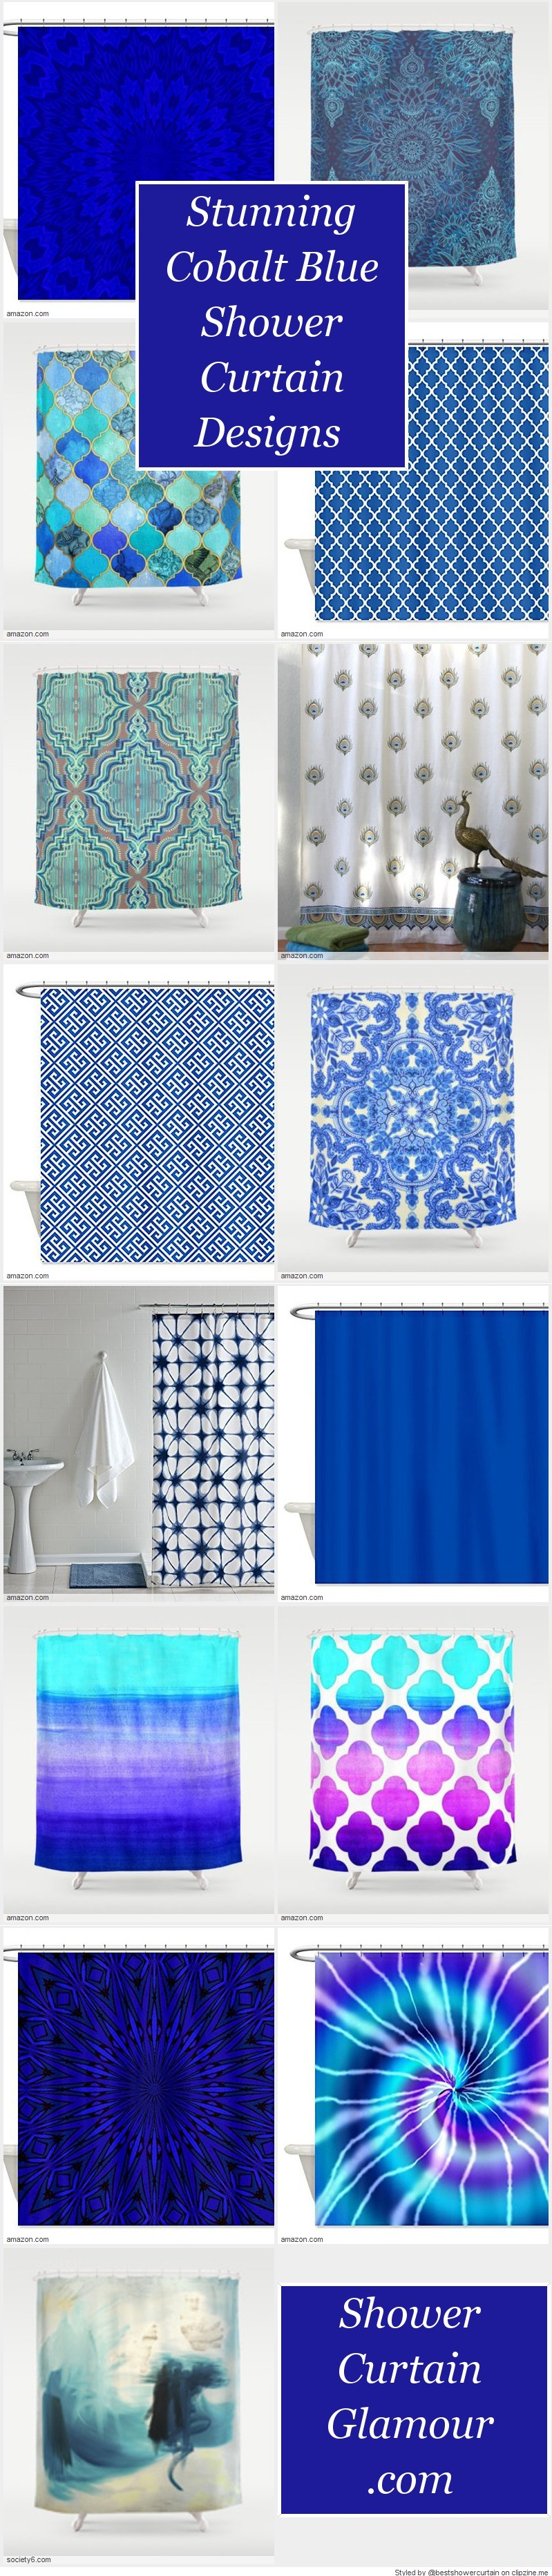 Best cobalt blue shower curtain designs cobalt blue - Cobalt blue bathroom accessories ...